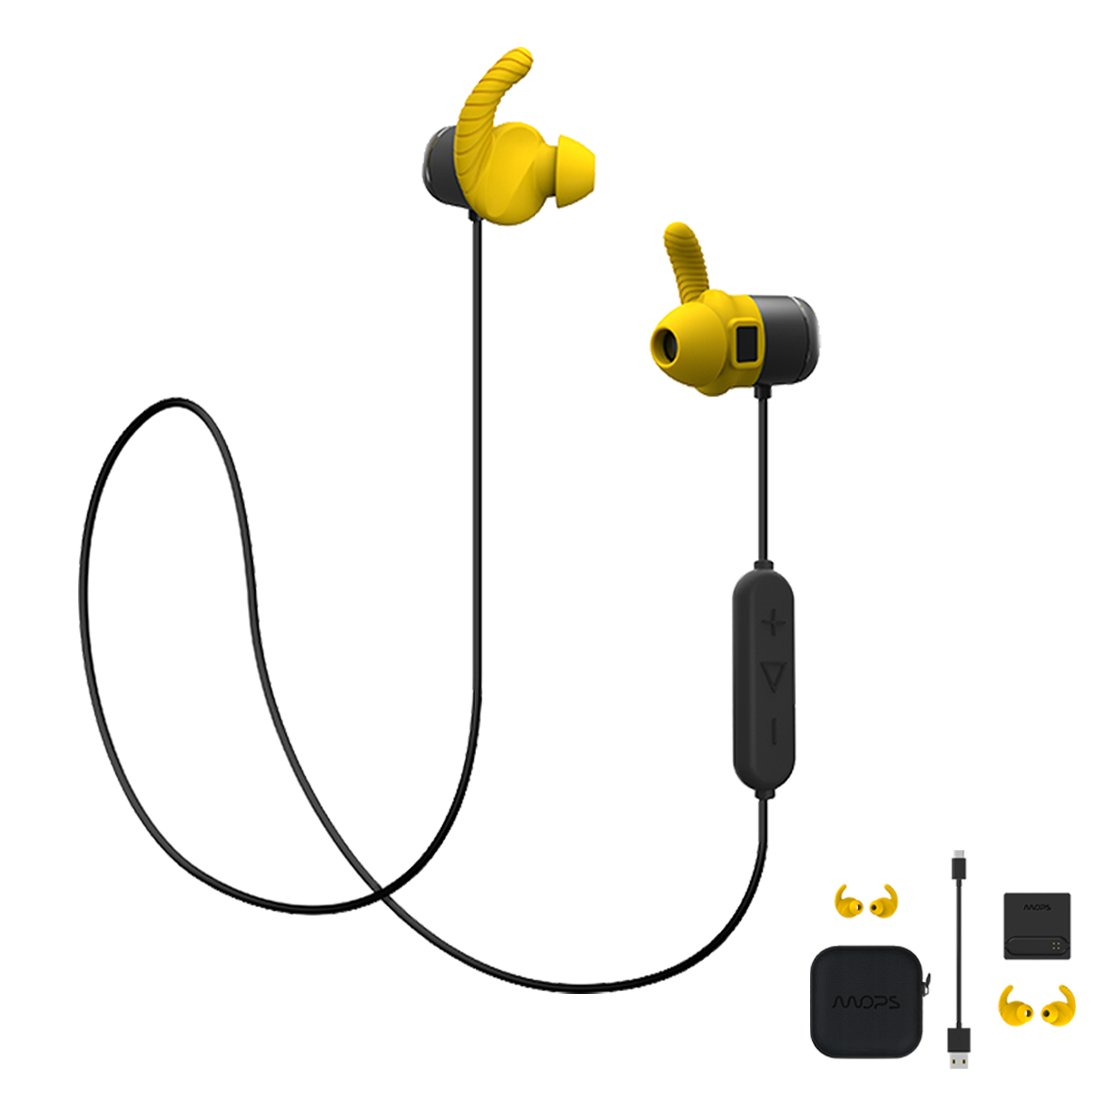 MOPS Sport Bluetooth Headset Sweat Proof Fitness & Running with Heart Rate Monitor Activity Tracker Yellow 8GB Offline Memory